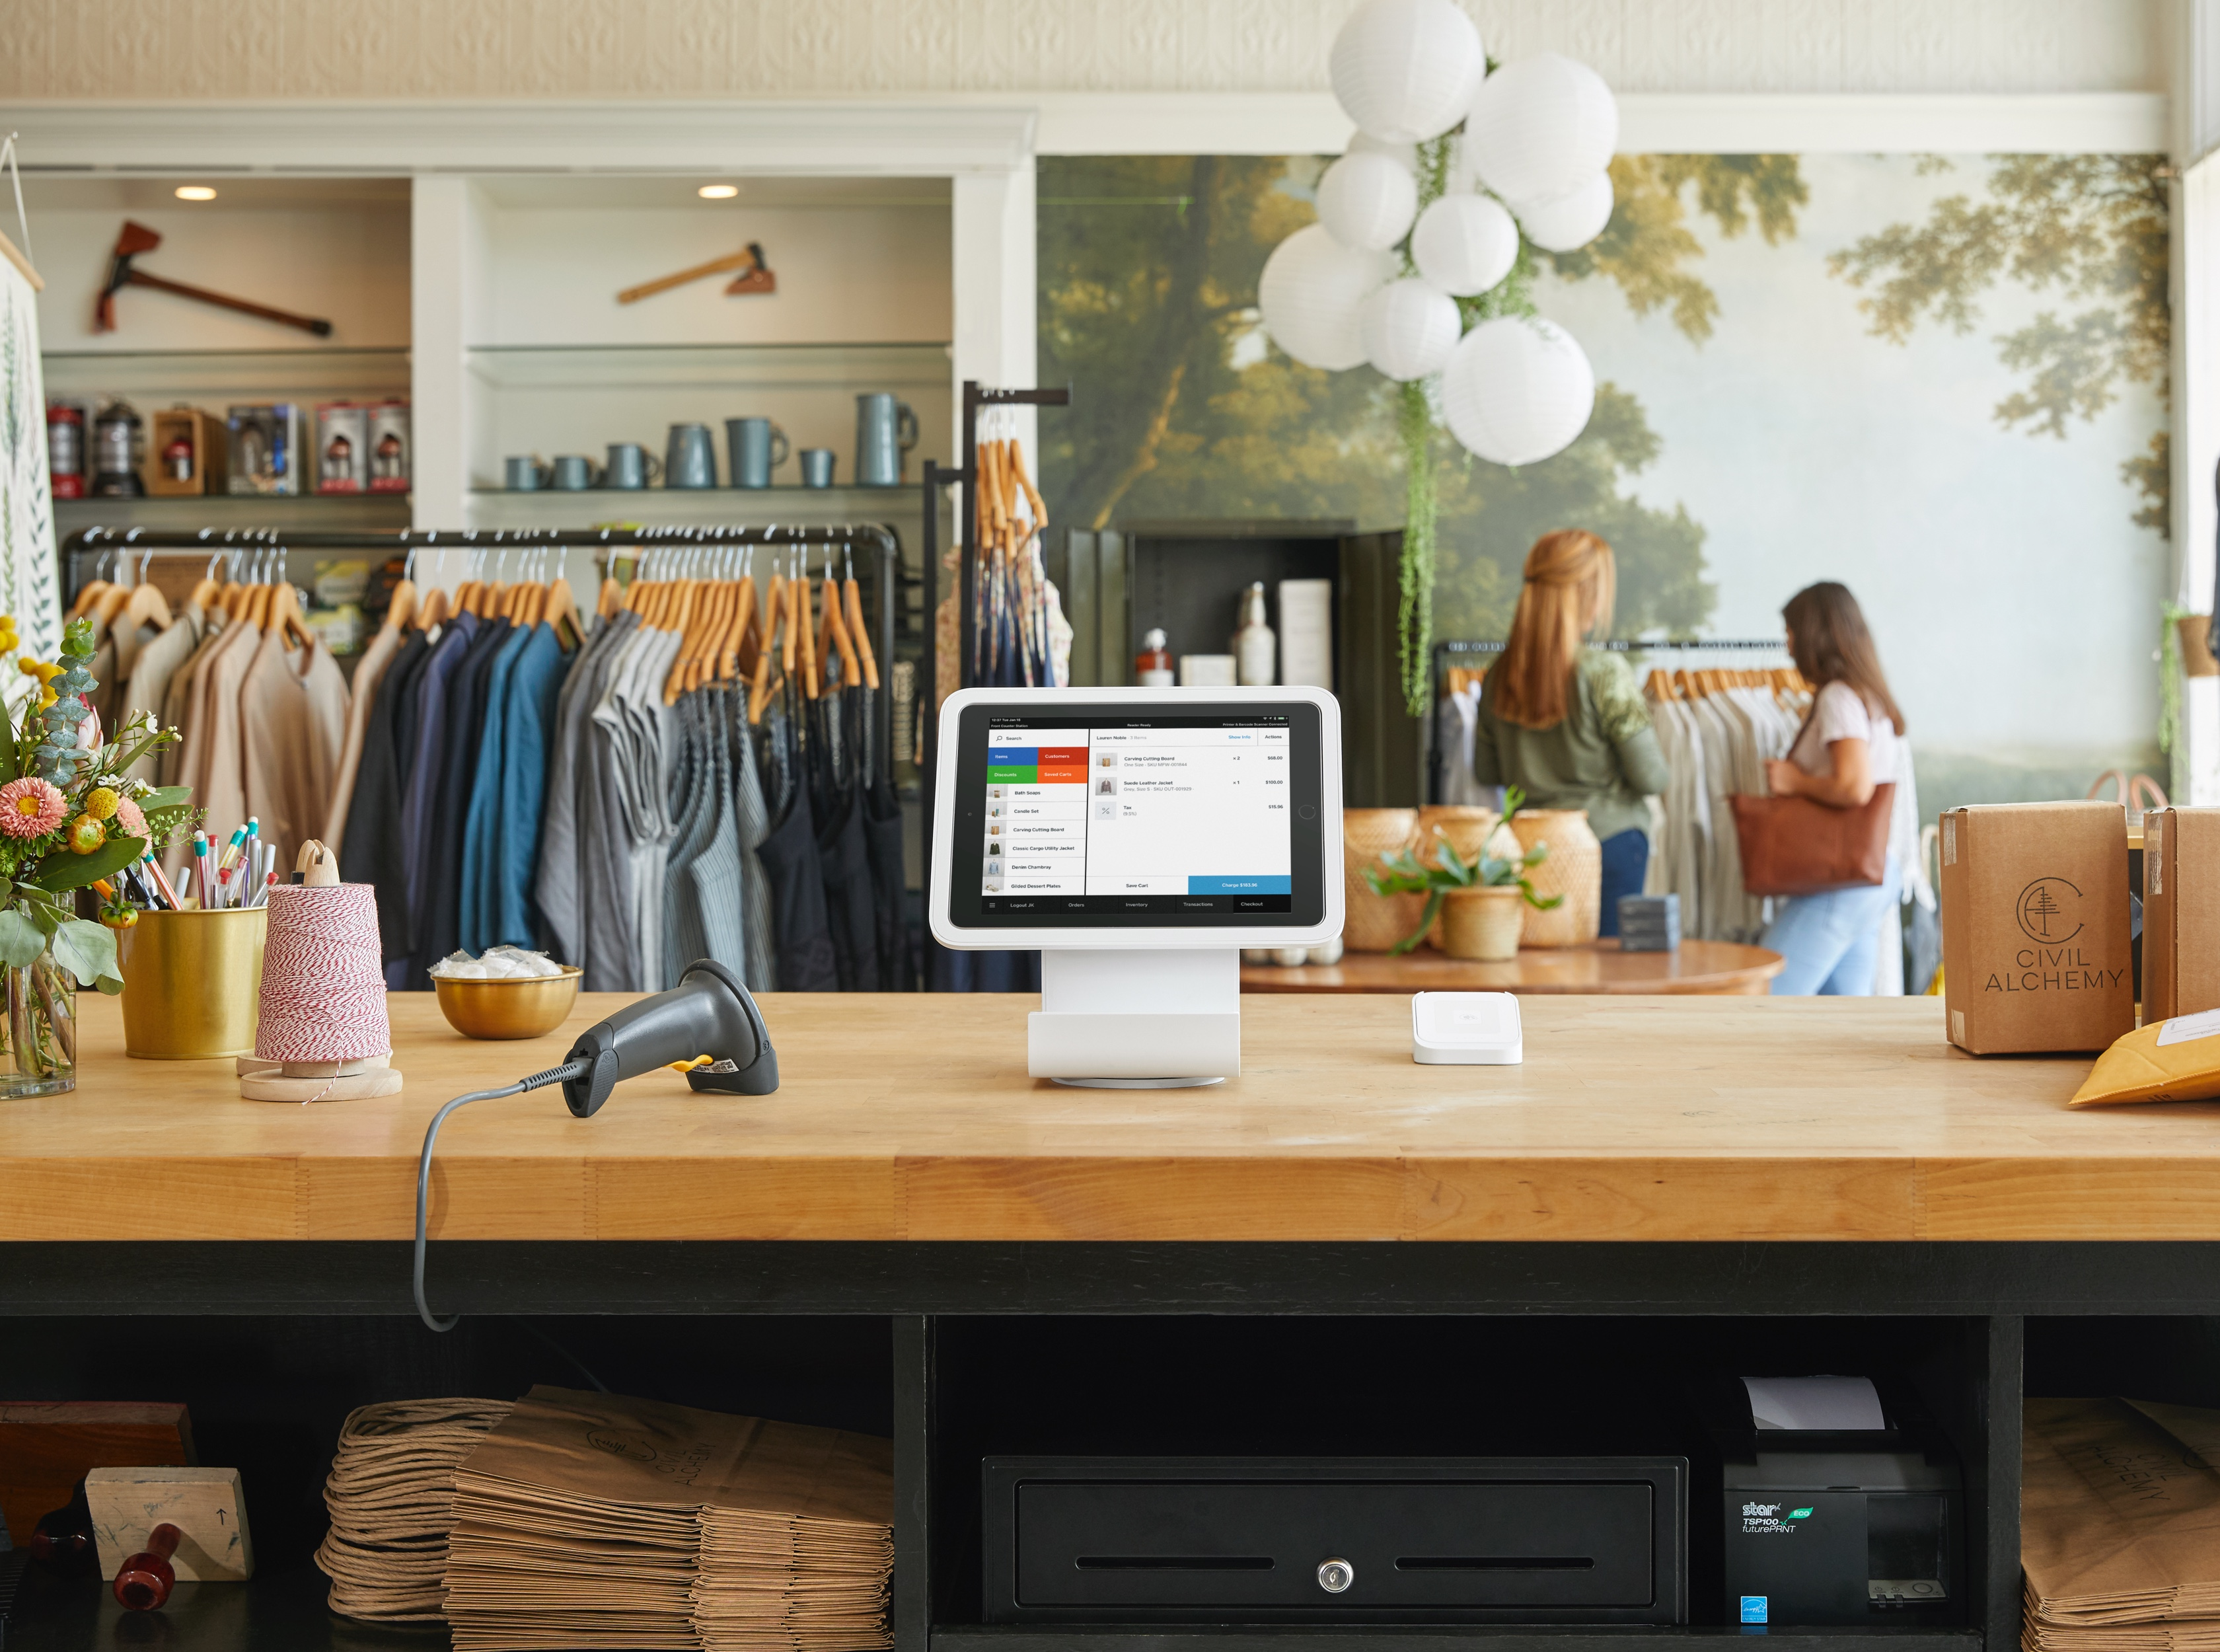 square reader makes it easier to calculate sales tax